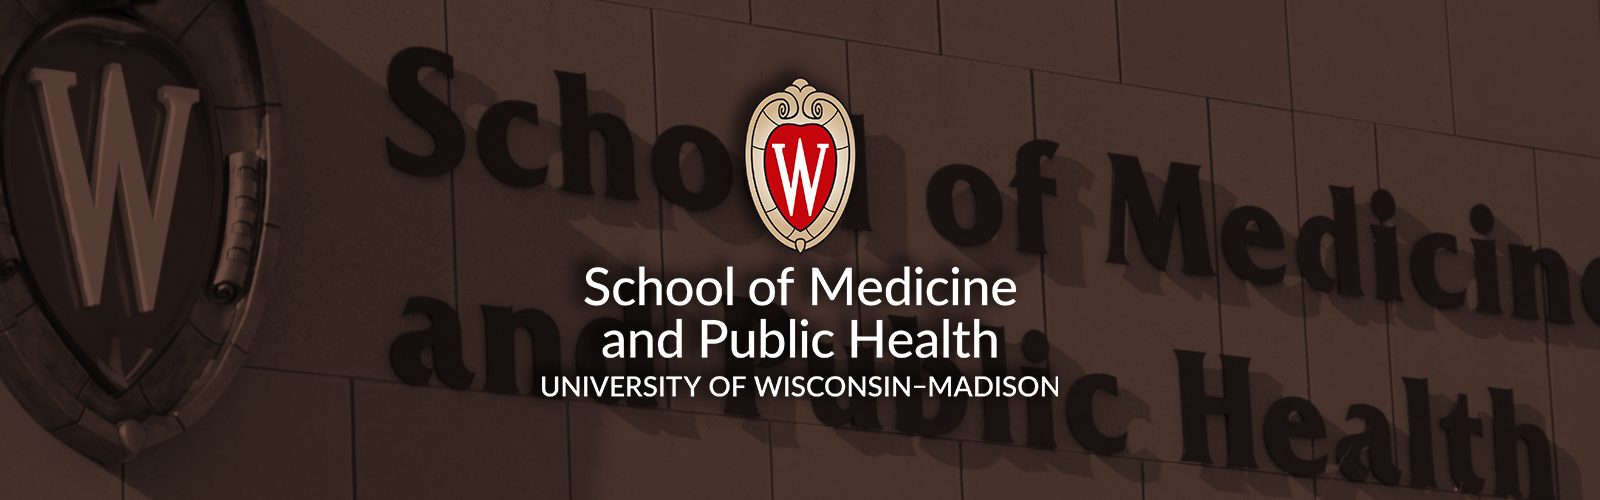 logo for School of Medicine and Public Health, University of Wisconsin-Madison